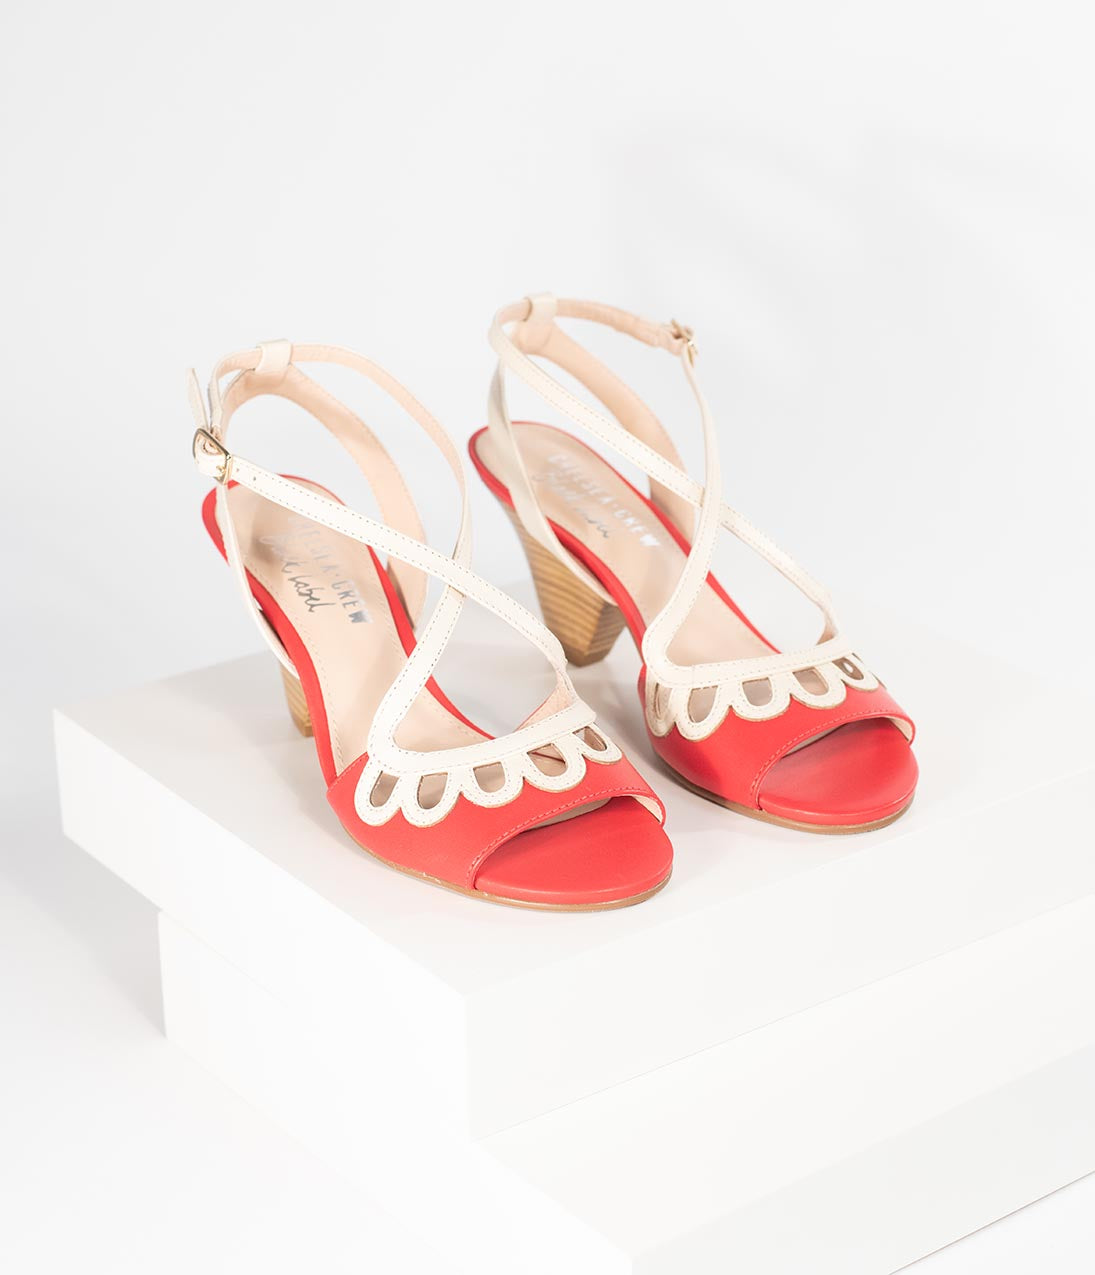 Pin Up Shoes- Heels, Pumps & Flats Chelsea Crew Red  Ivory Leather Peep Toe Judith Heels $88.00 AT vintagedancer.com